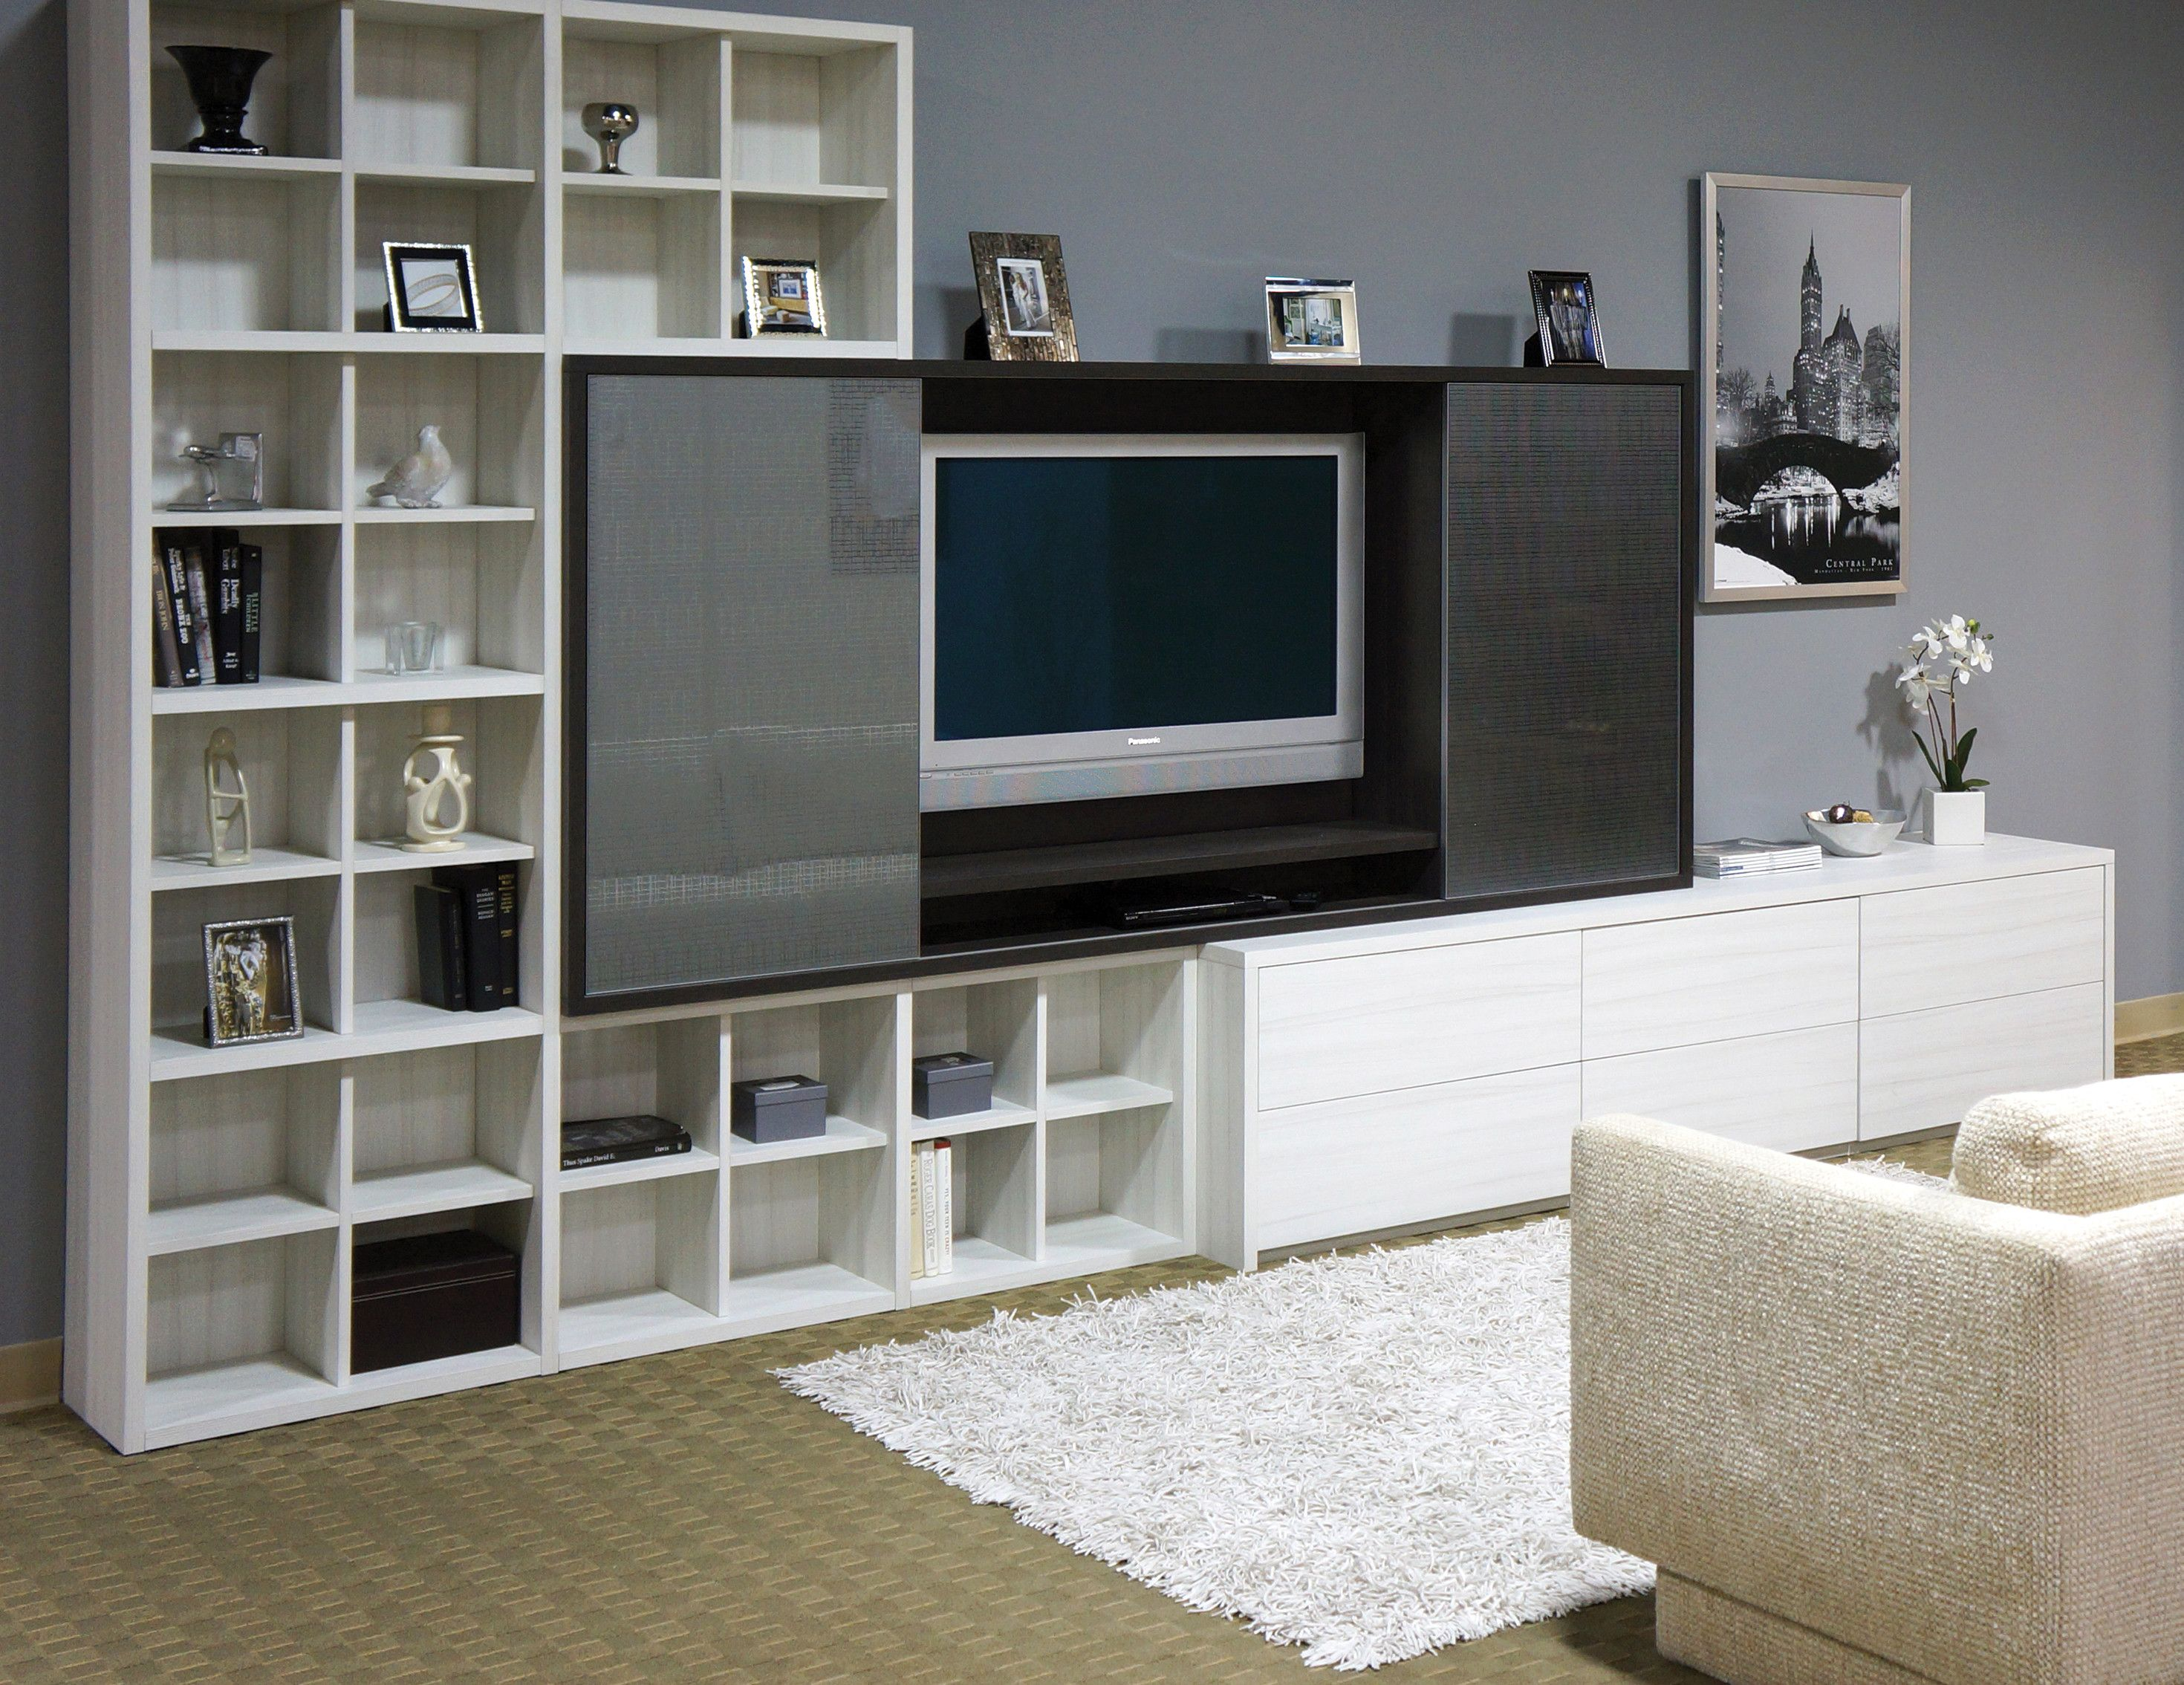 Need More Storage In Your Living Room? The Best Organizing Solutions With  Well Designed Entertainment Centers U0026 Playrooms By California Closets.